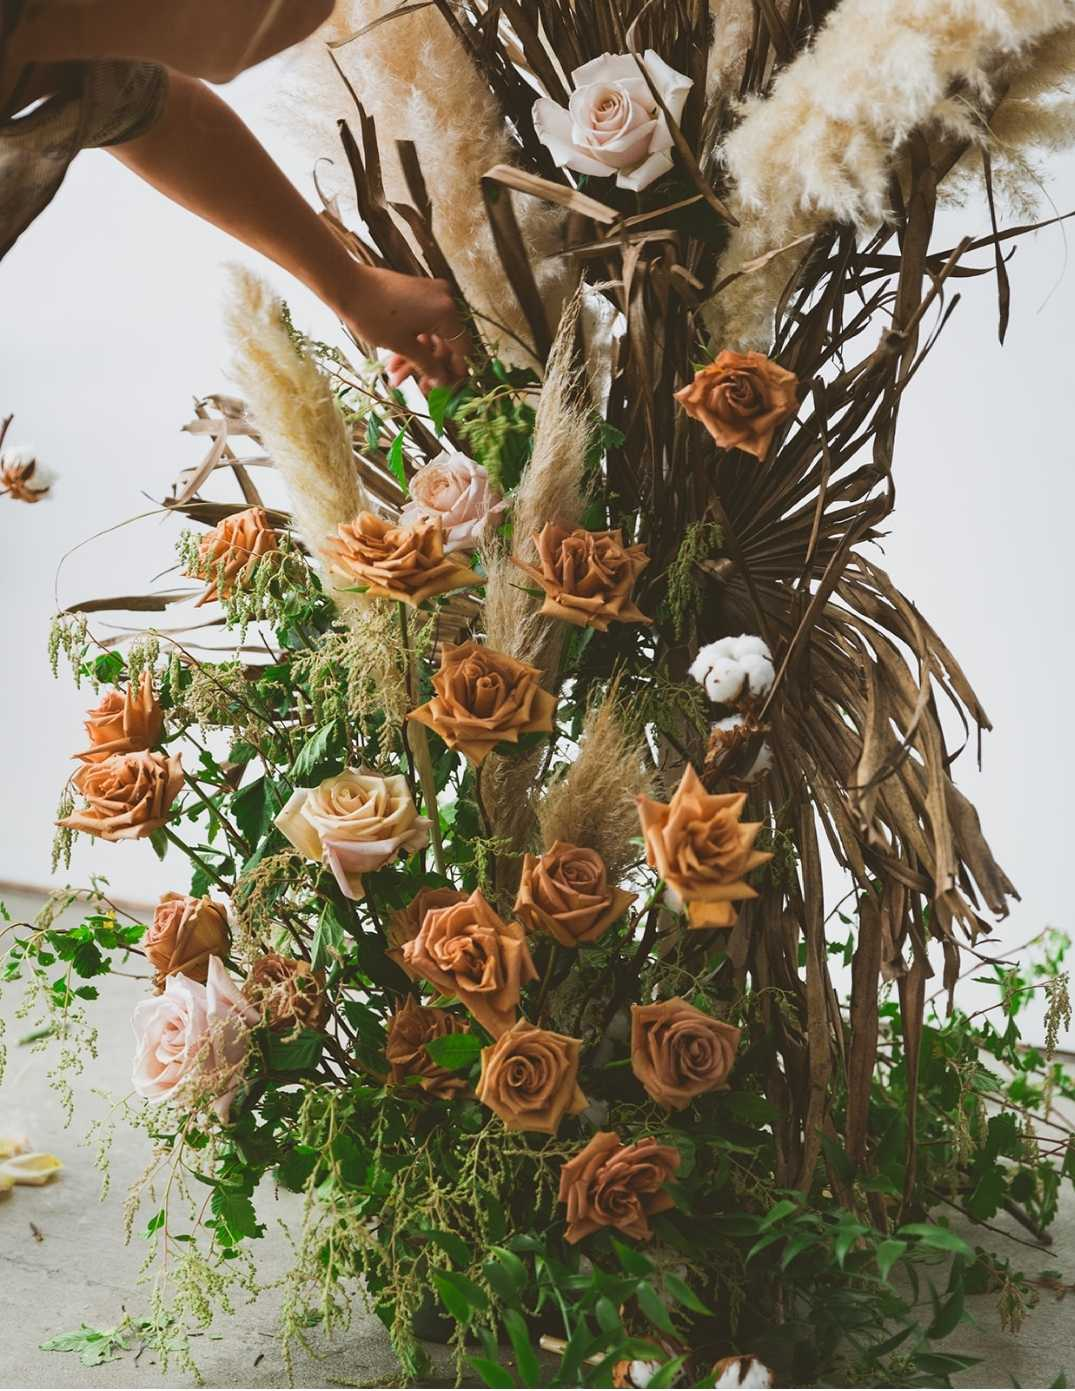 Taupe and blush roses in a minimalist floral installation rustic industrial natural light wedding venue Victoria, B.C floral designer